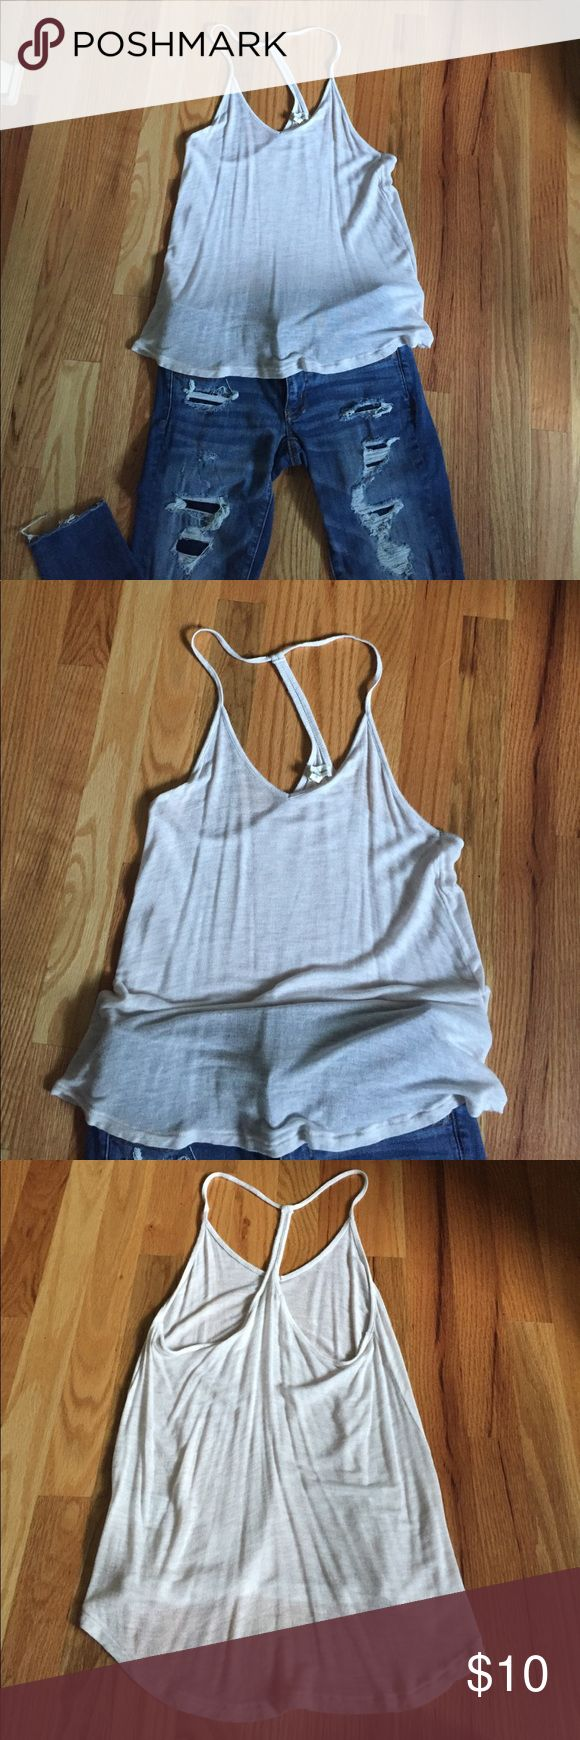 Razor back tank Razor back see through tank top from Urban. It's never never been worn. It's supper cute paired with a bralette underneath. It's perfect for the summer. You can even just wear it over a bathing suit top. Material: 95% rayon and 5% spandex(super comfy) Urban Outfitters Tops Tank Tops